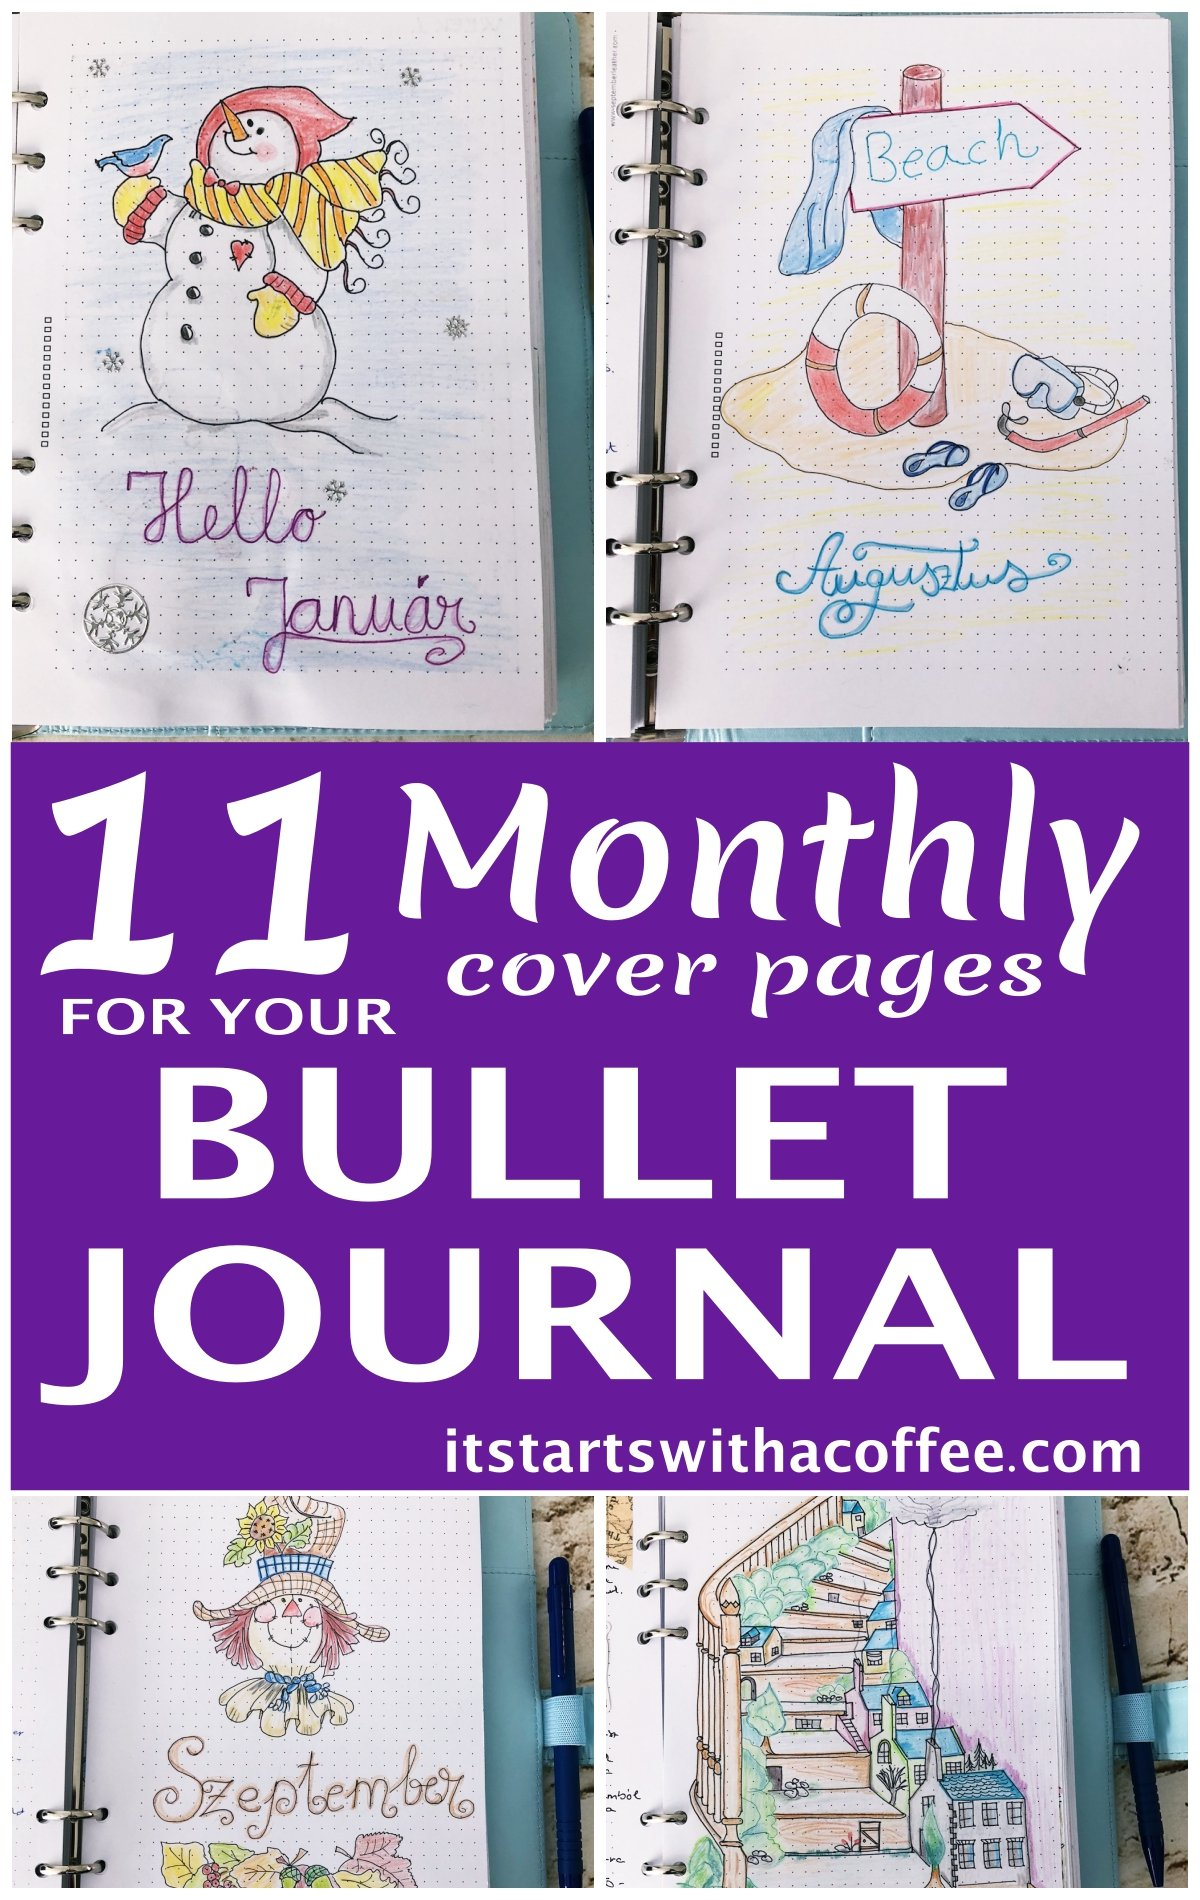 11 monthly cover pages for your bullet journal - itstartswithacoffee.com #bulletjournal #bulletjournaling #monthlyplanner #monthlycover #coverpages #bujo